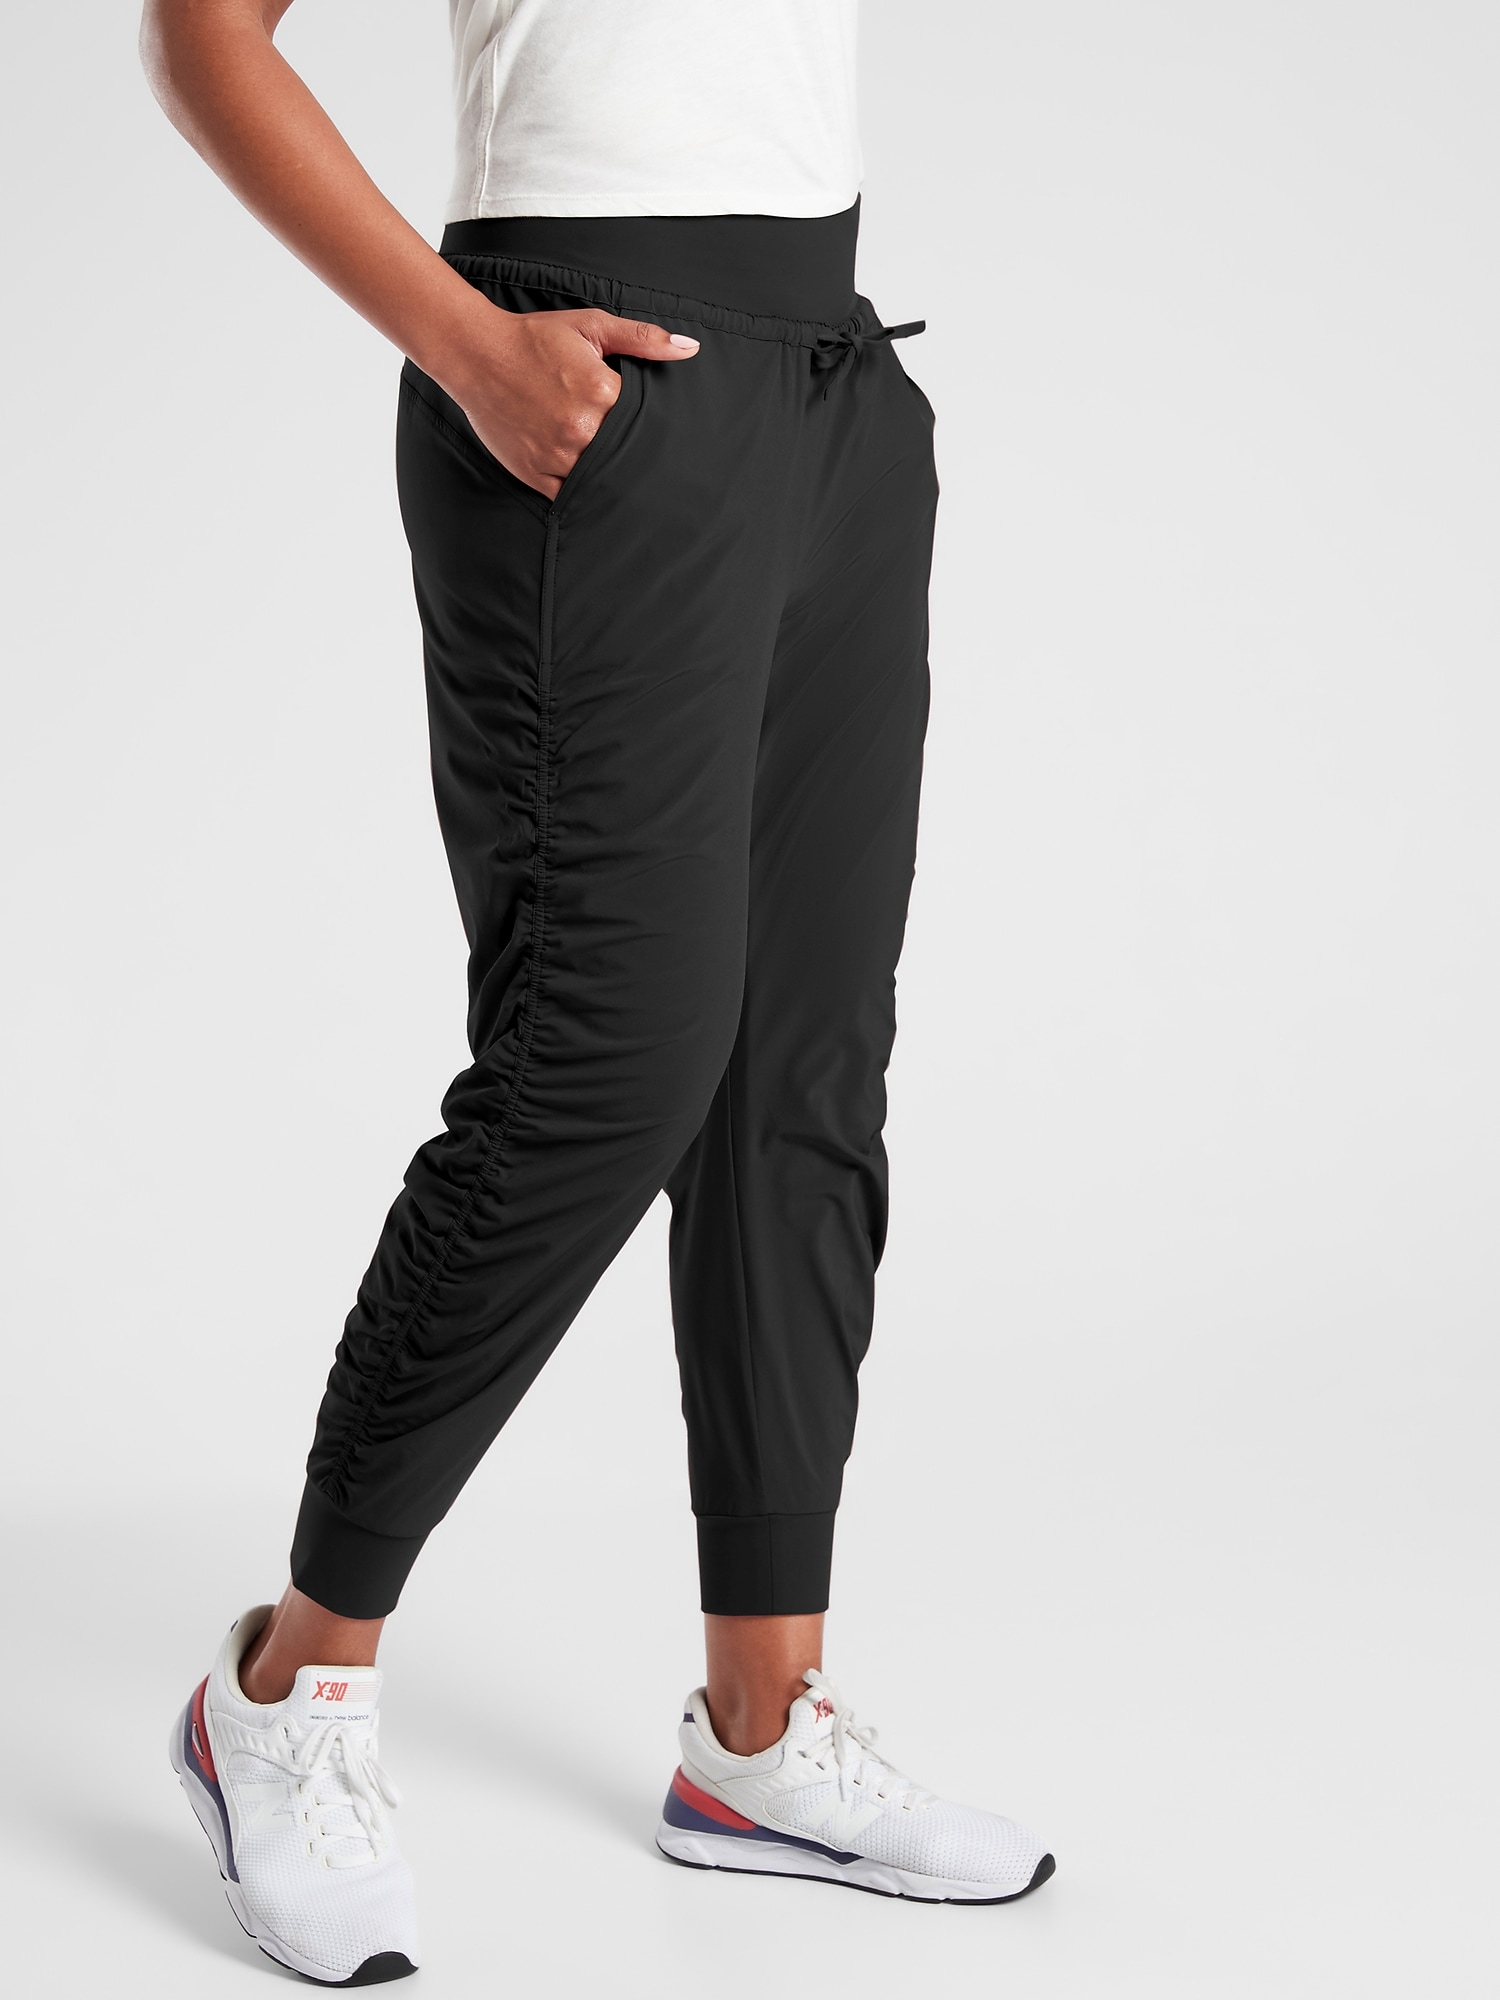 Athleta Attitude Lined Pant